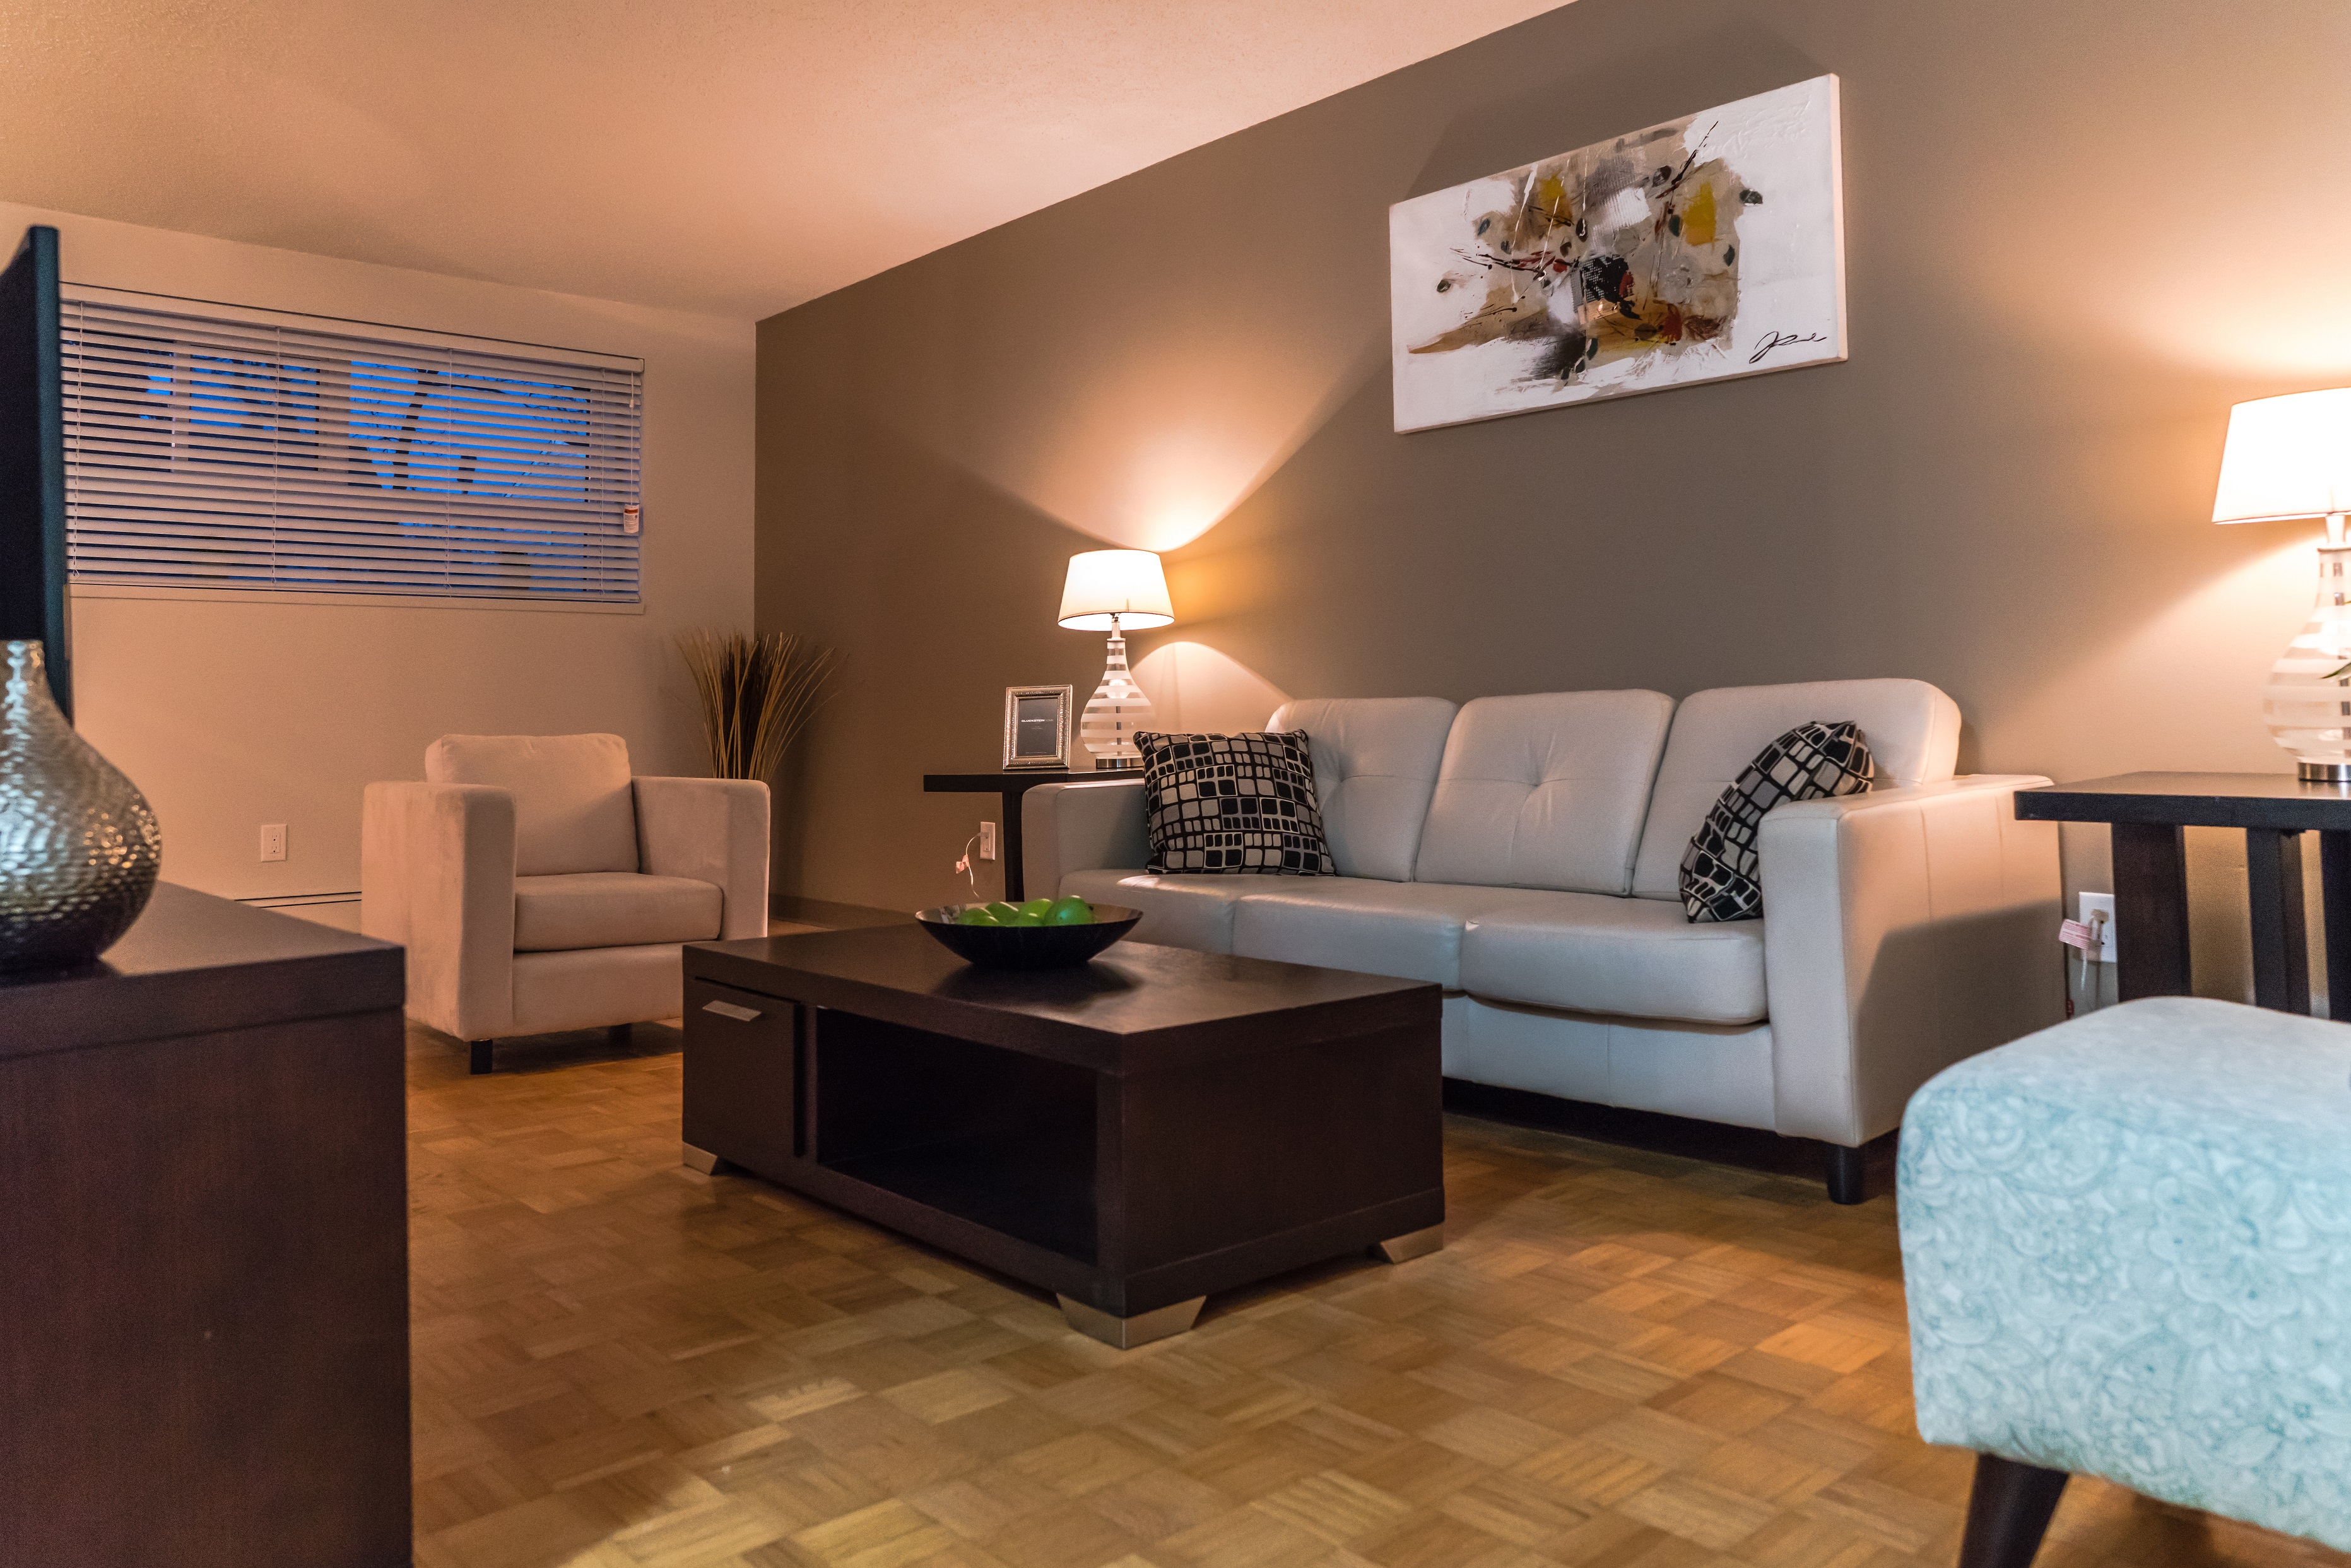 Towers Realty Group - Owen Apartments - 650 Stafford - LivingRoom3